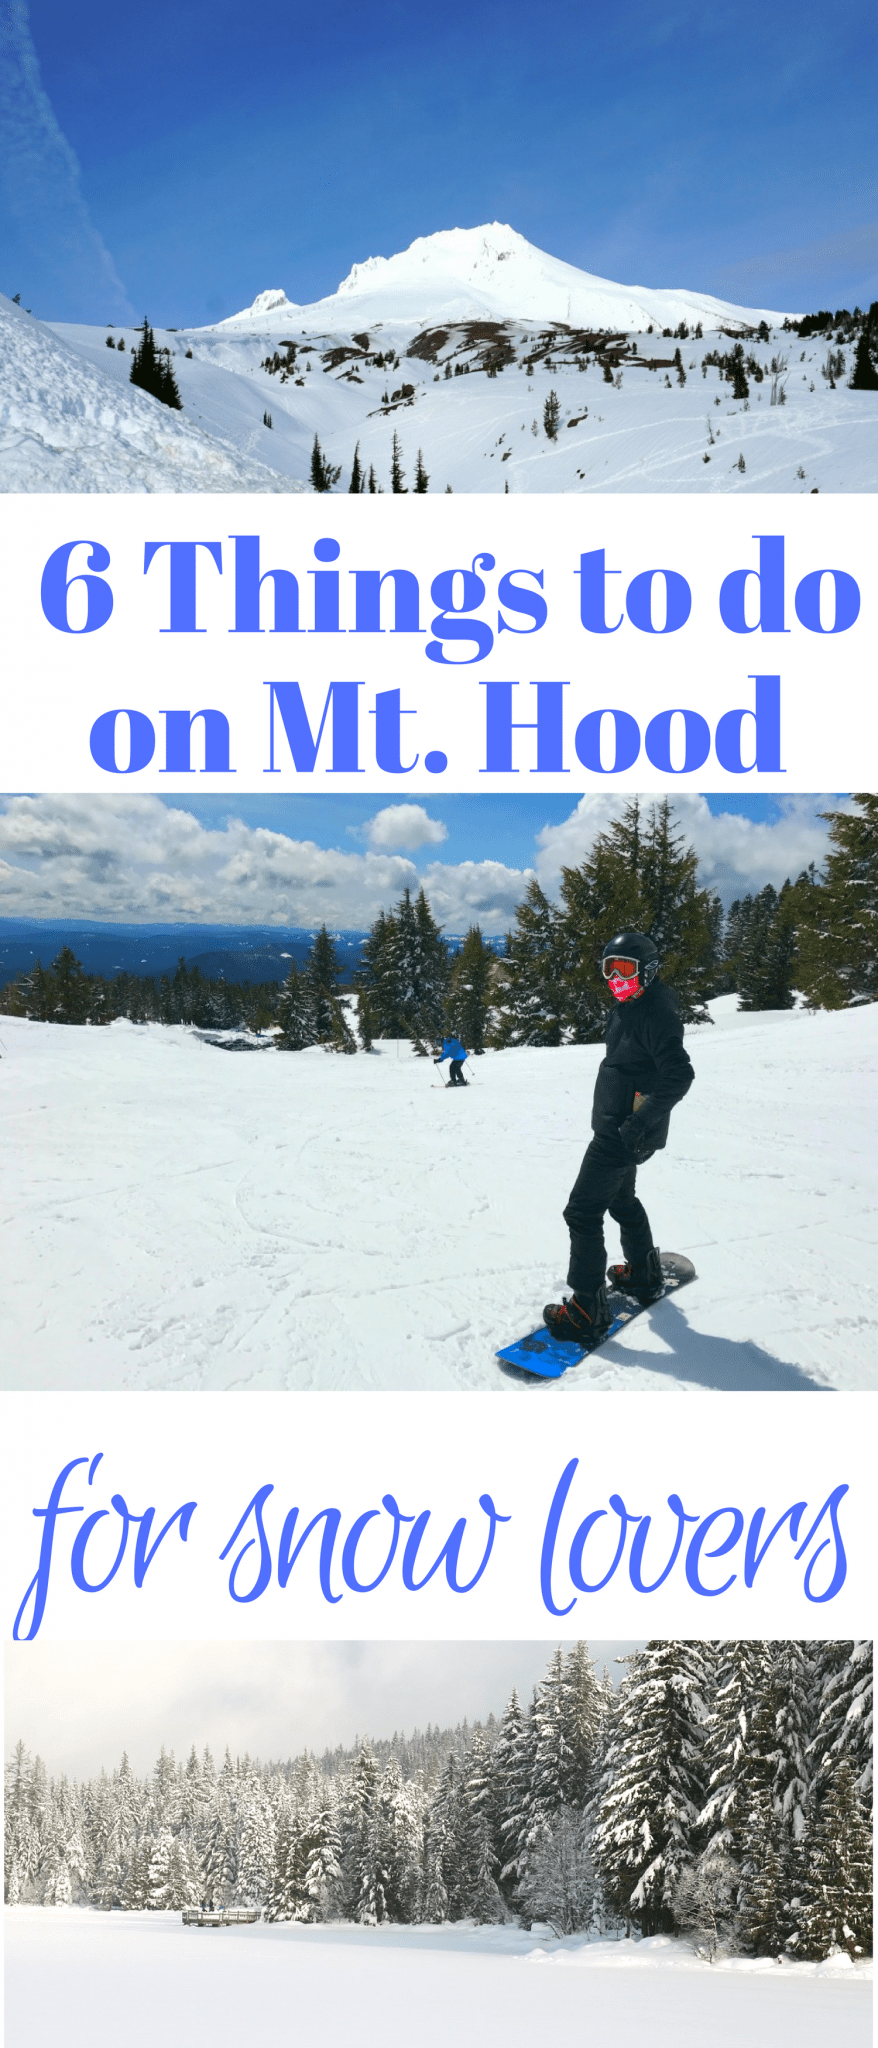 6 things to do on Mt. Hood